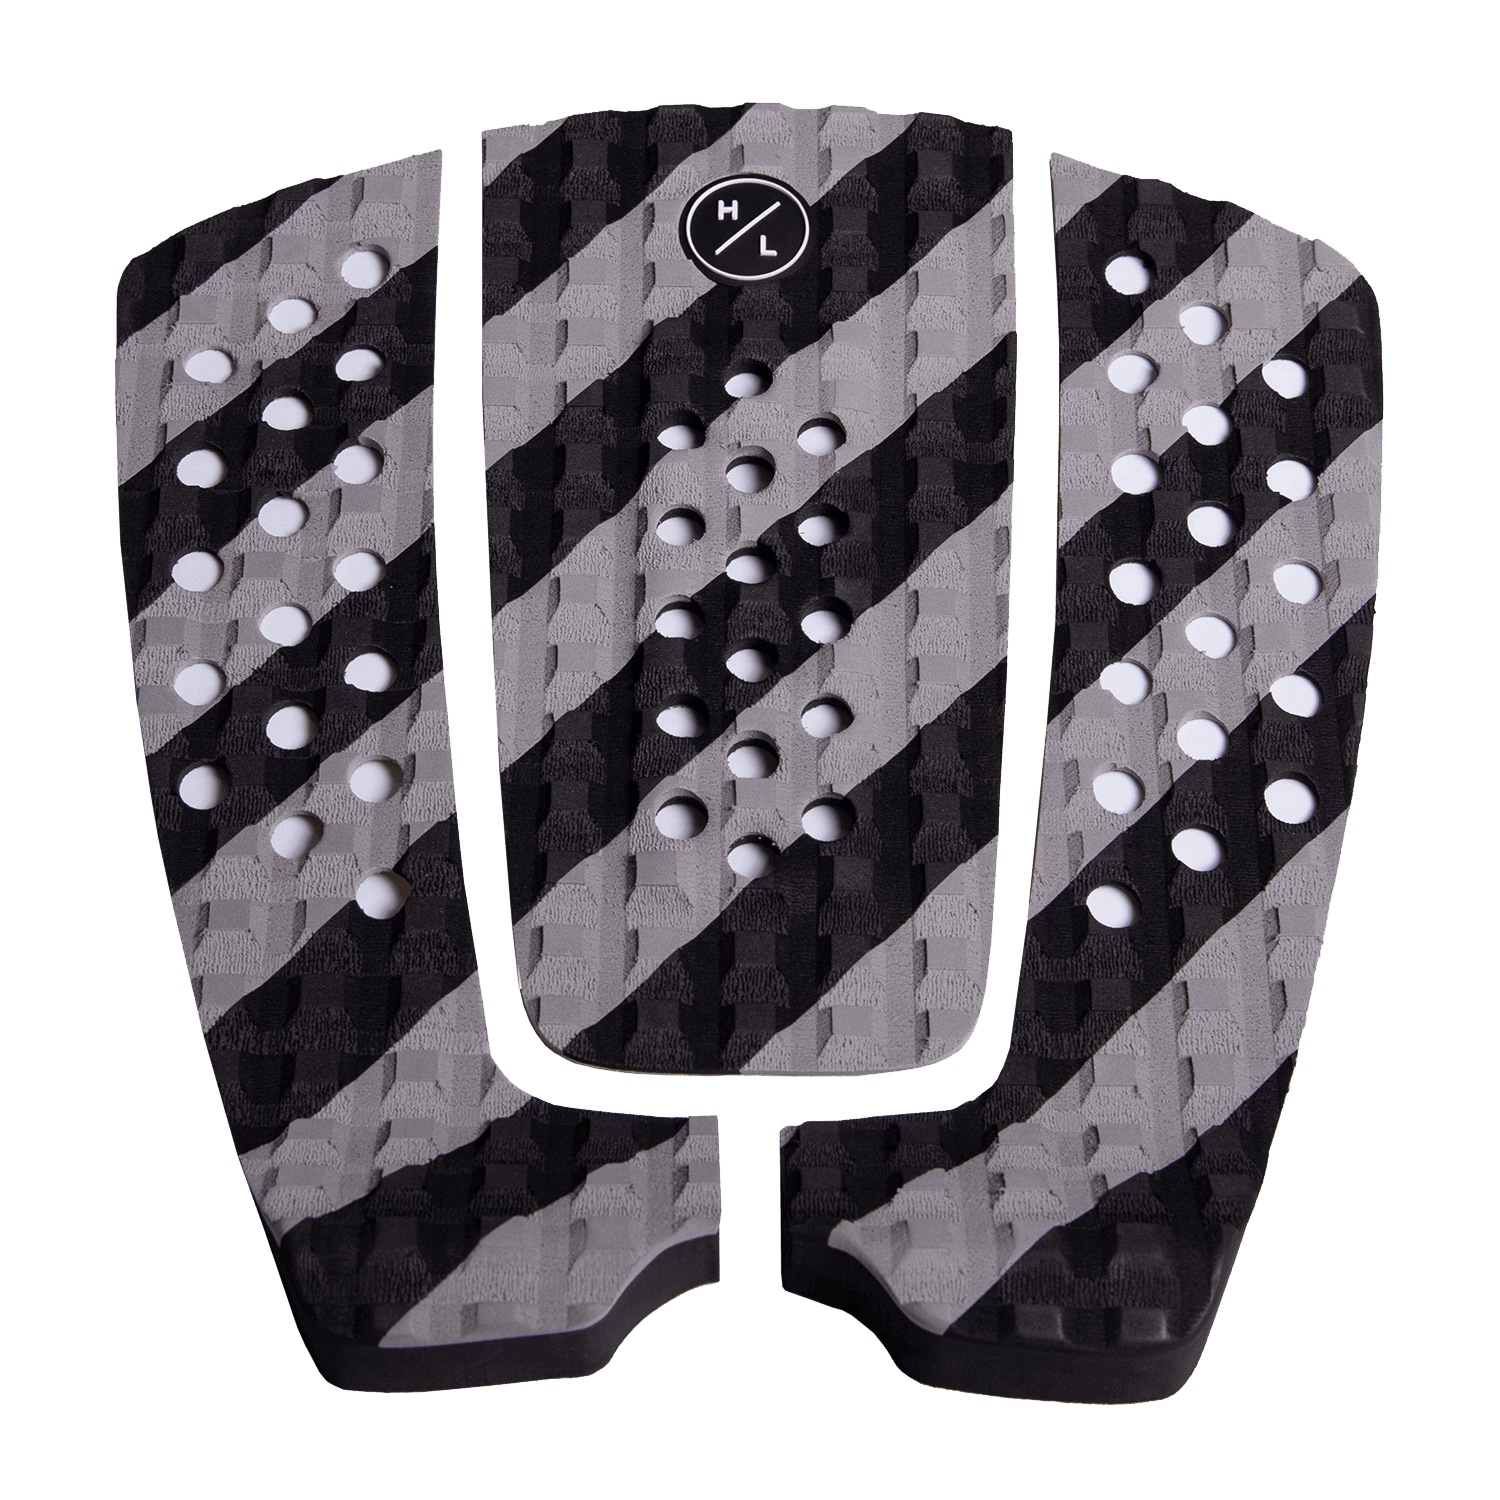 Hyperlite HL Square Rear Traction Pad   2022